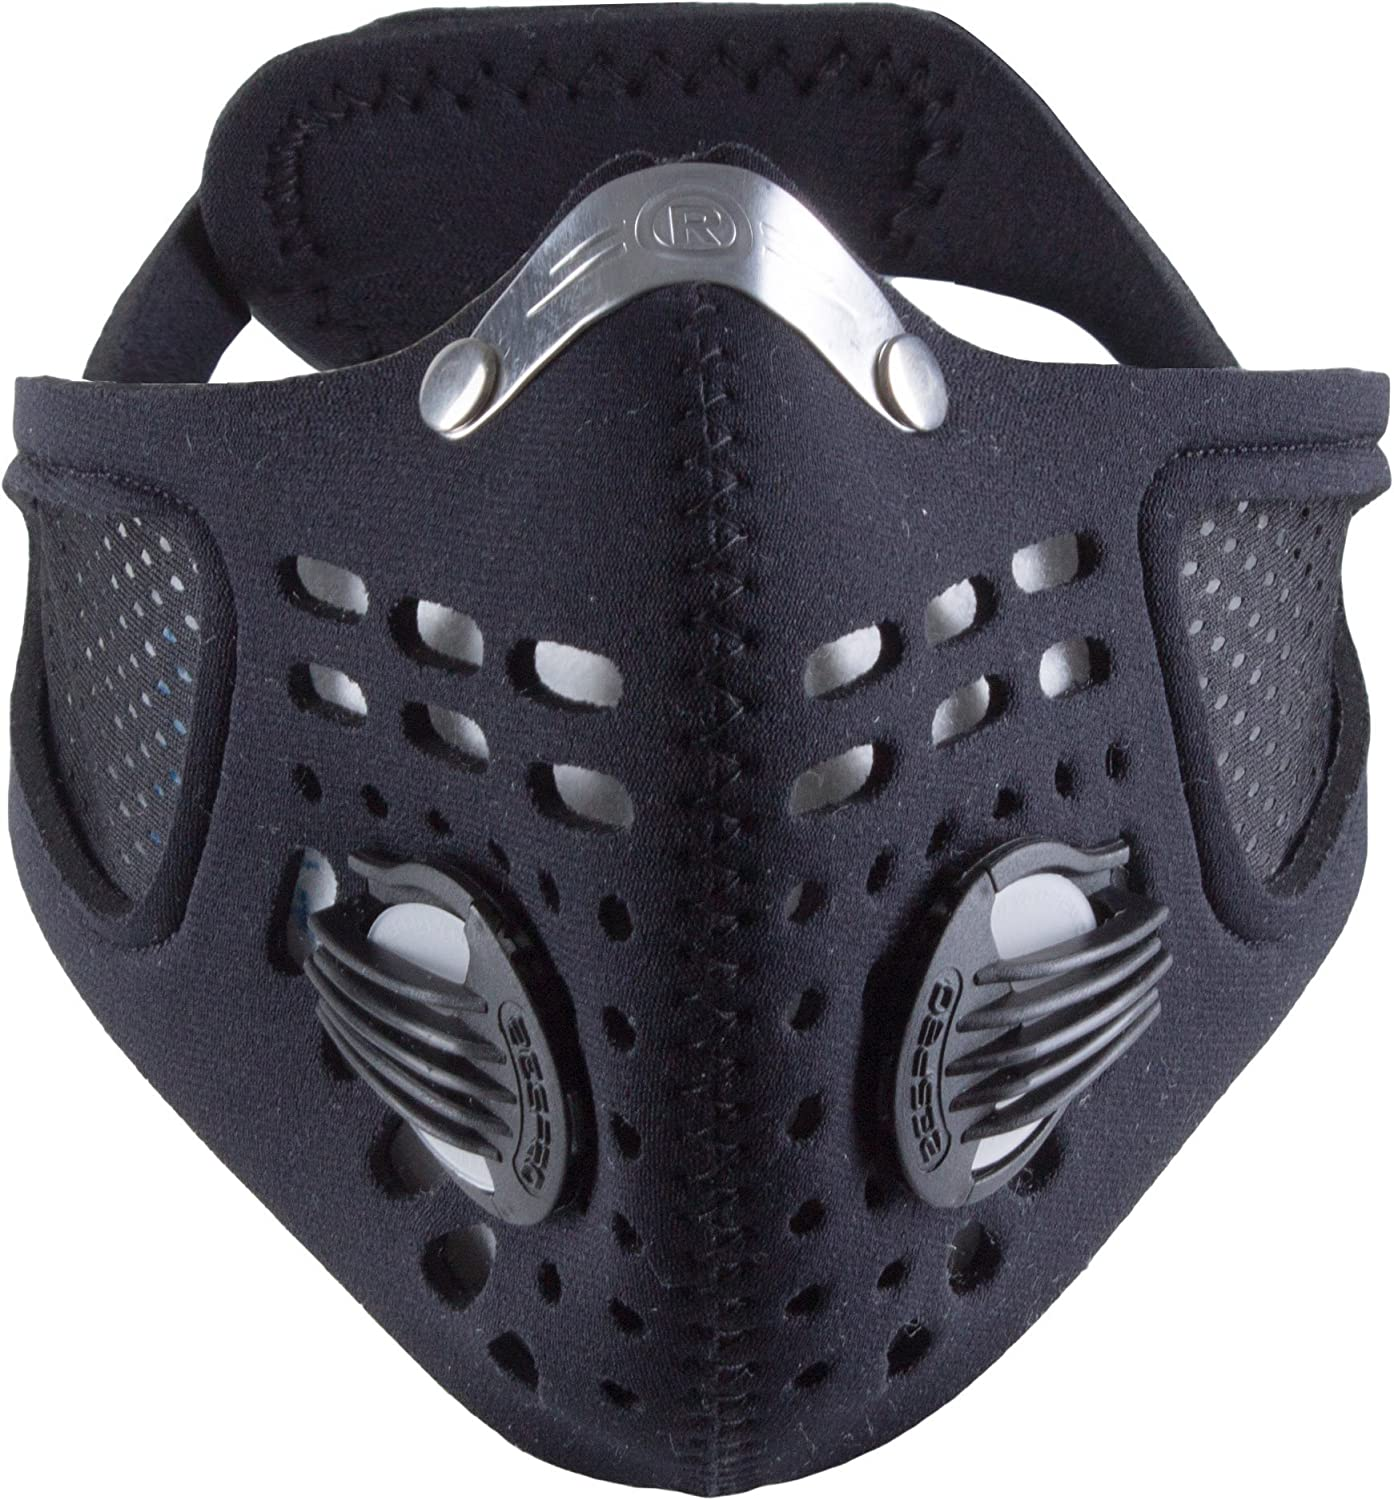 amazon com respro sportsta mask home improvement